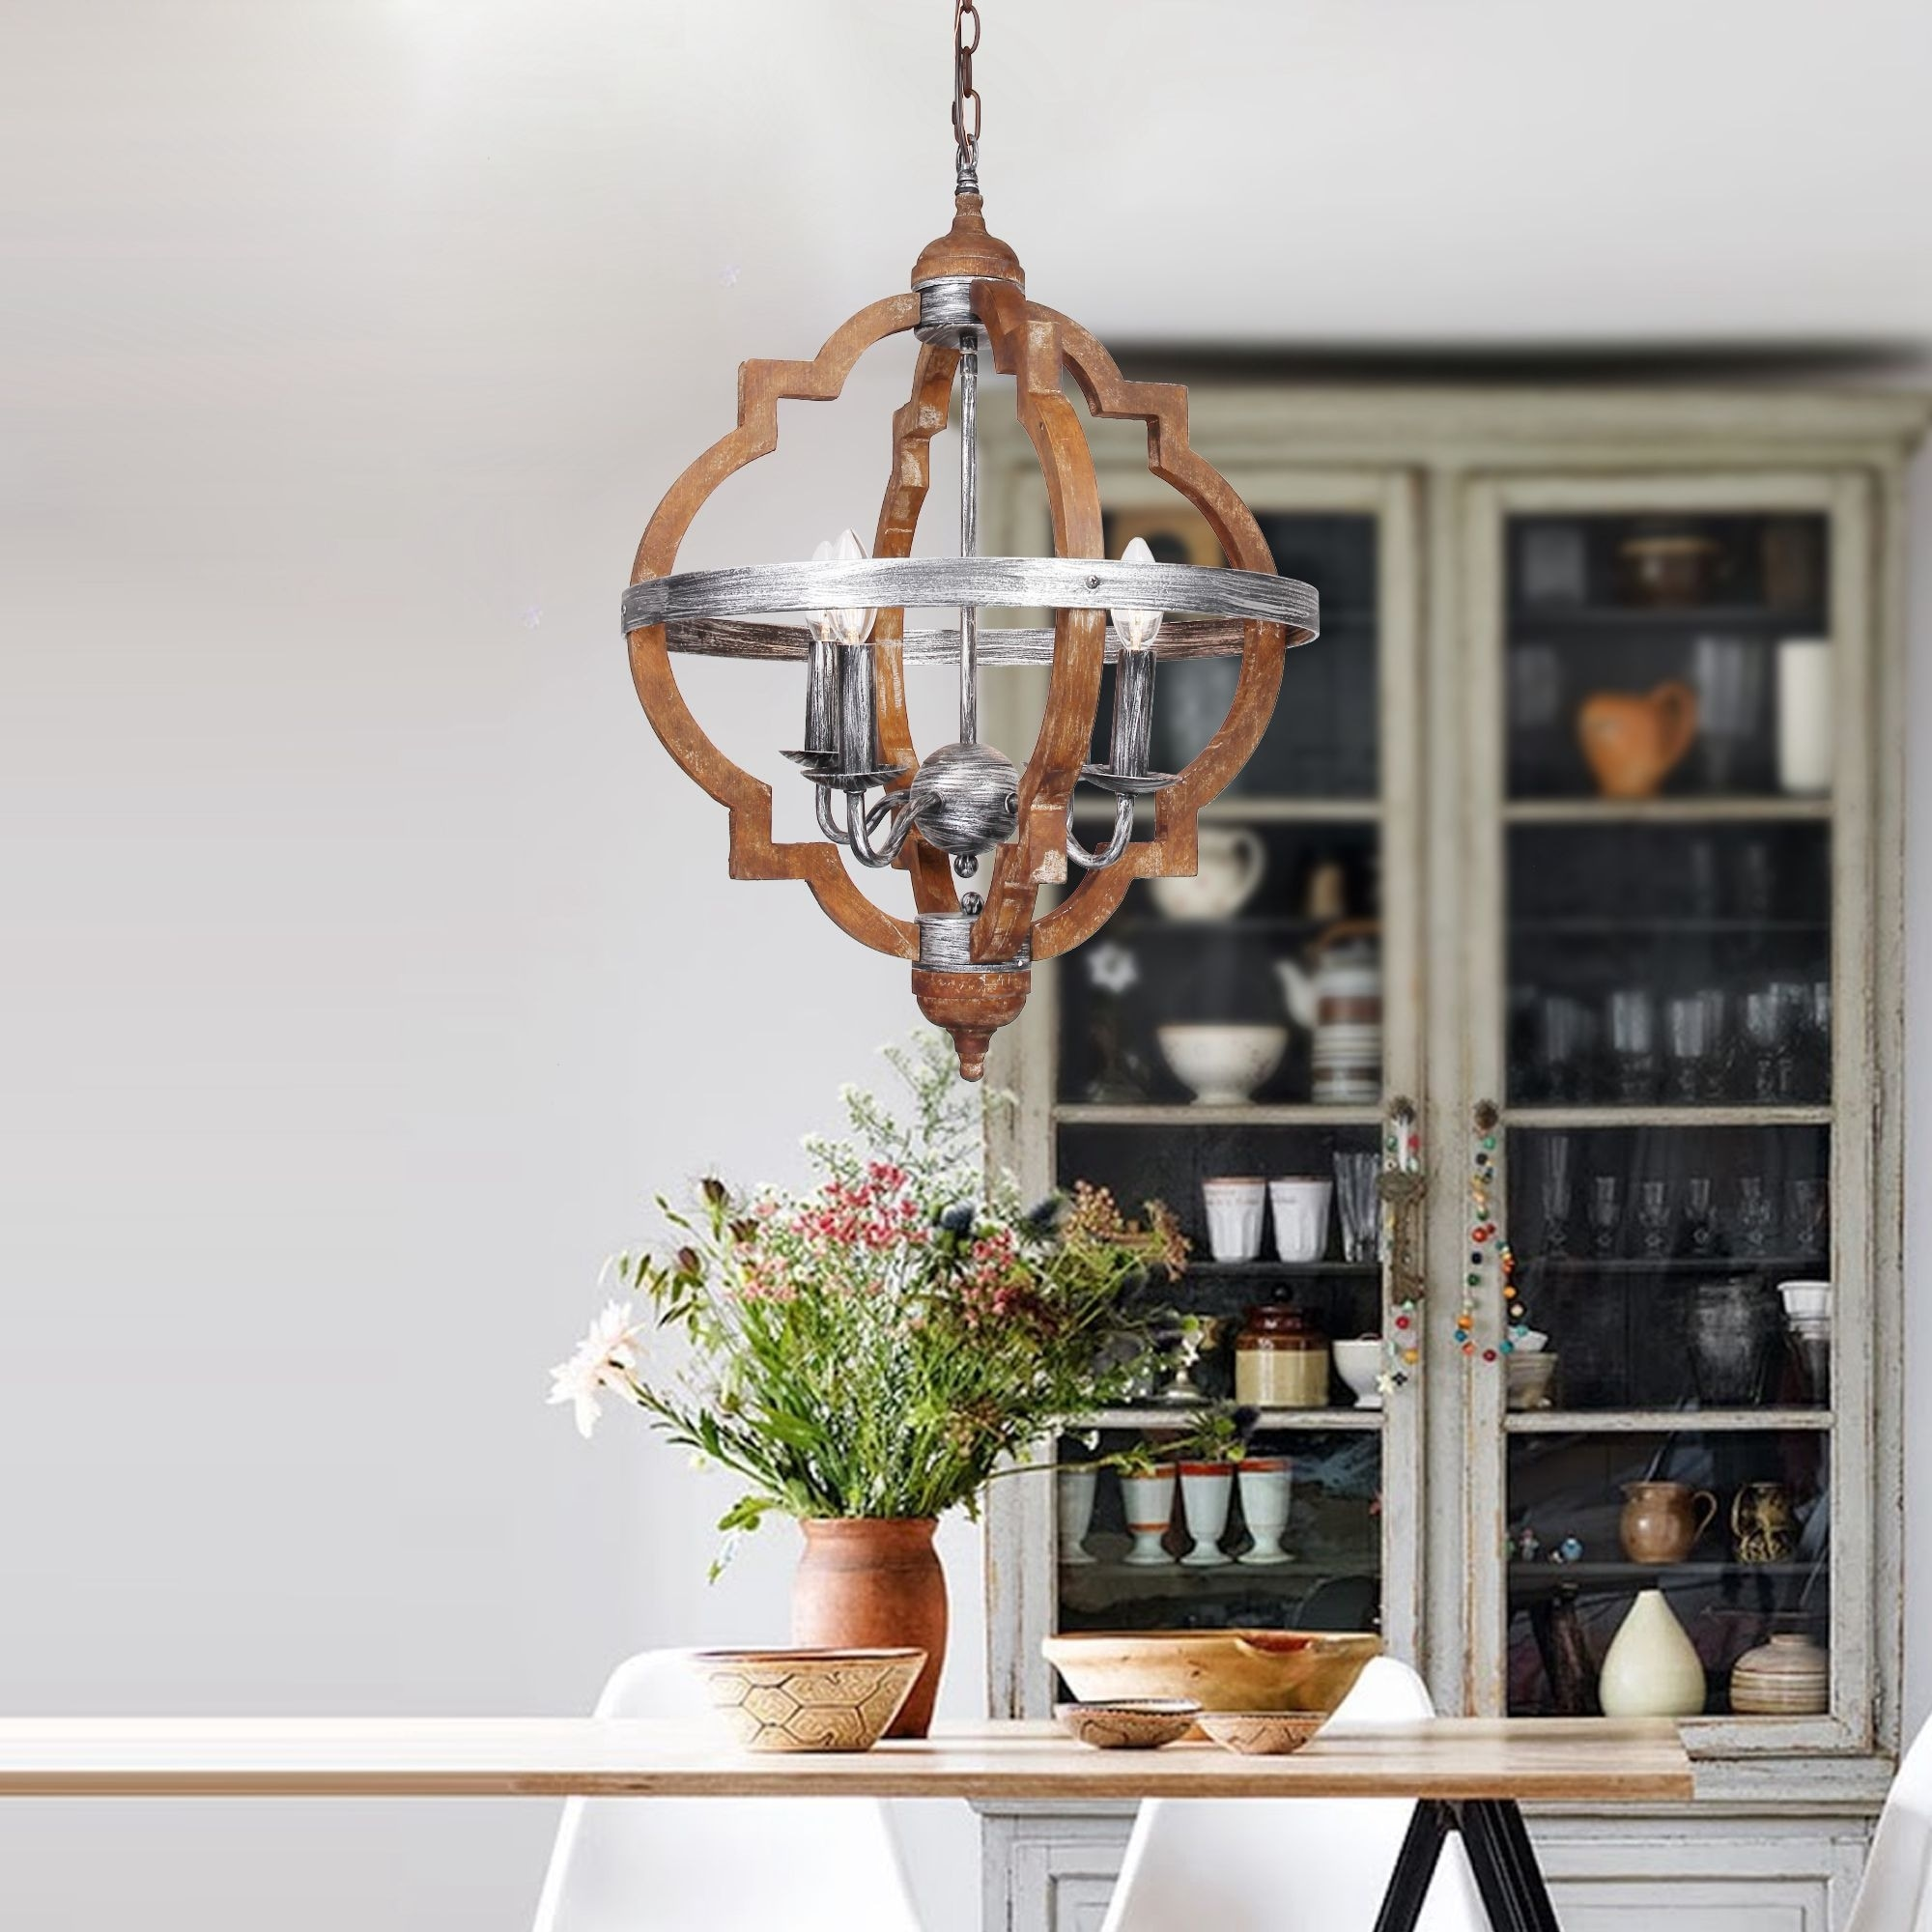 Antique distressed wood 4 light hall foyer chandelier free antique distressed wood 4 light hall foyer chandelier free shipping today overstock 26345156 aloadofball Images